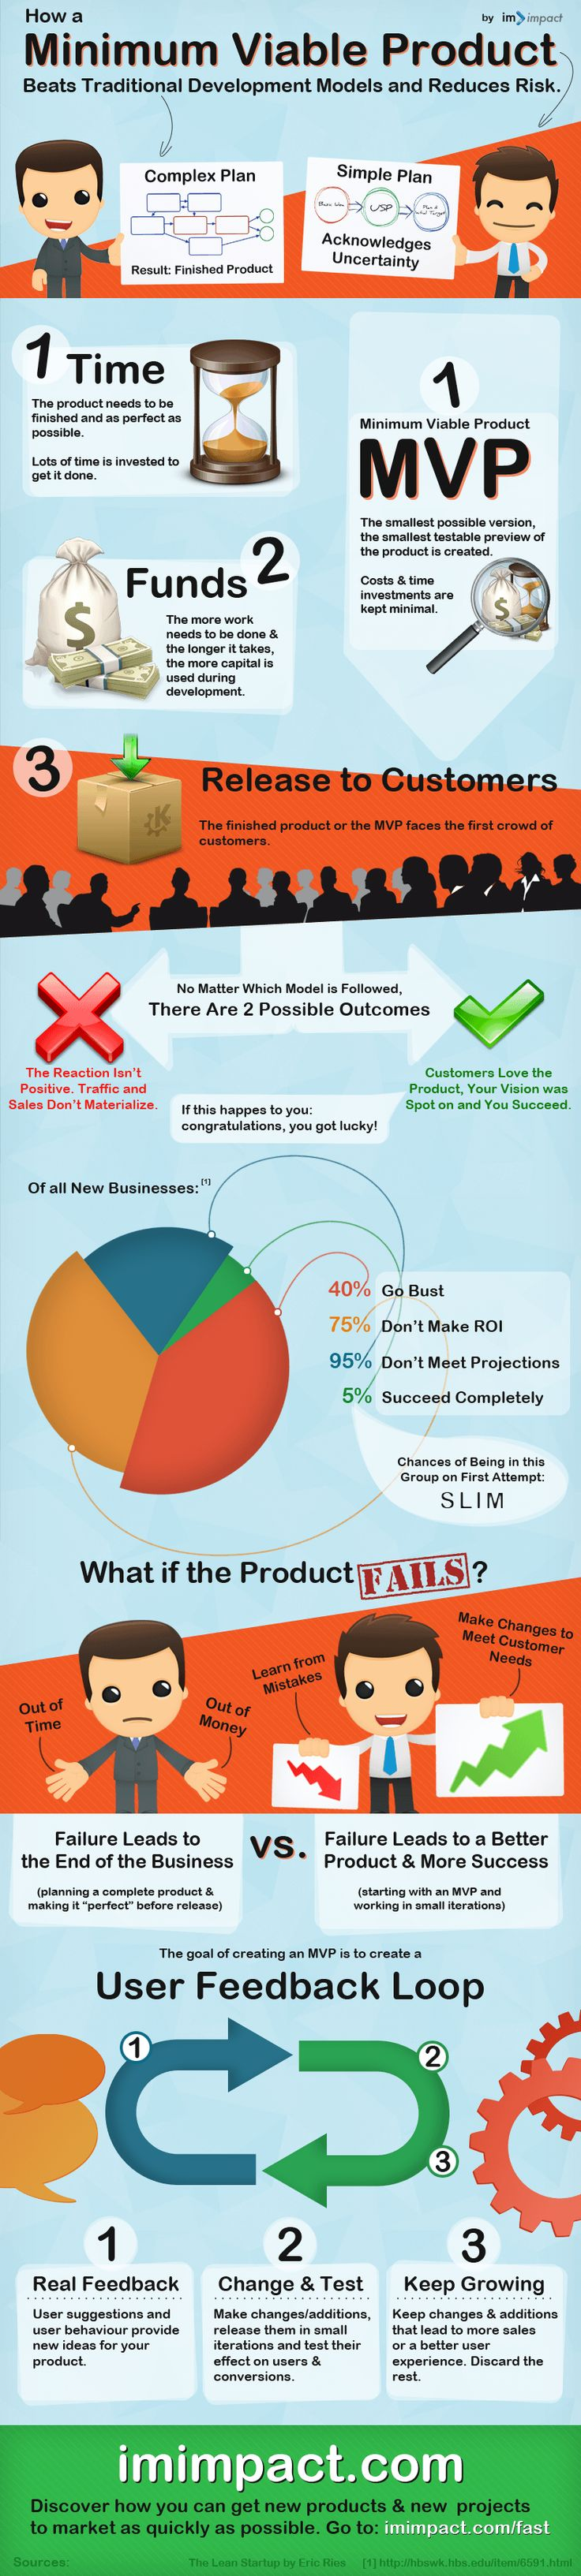 Want to get that product out of your head more quickly? This infographic shares a great way to minimize risk and improve your odds of success!